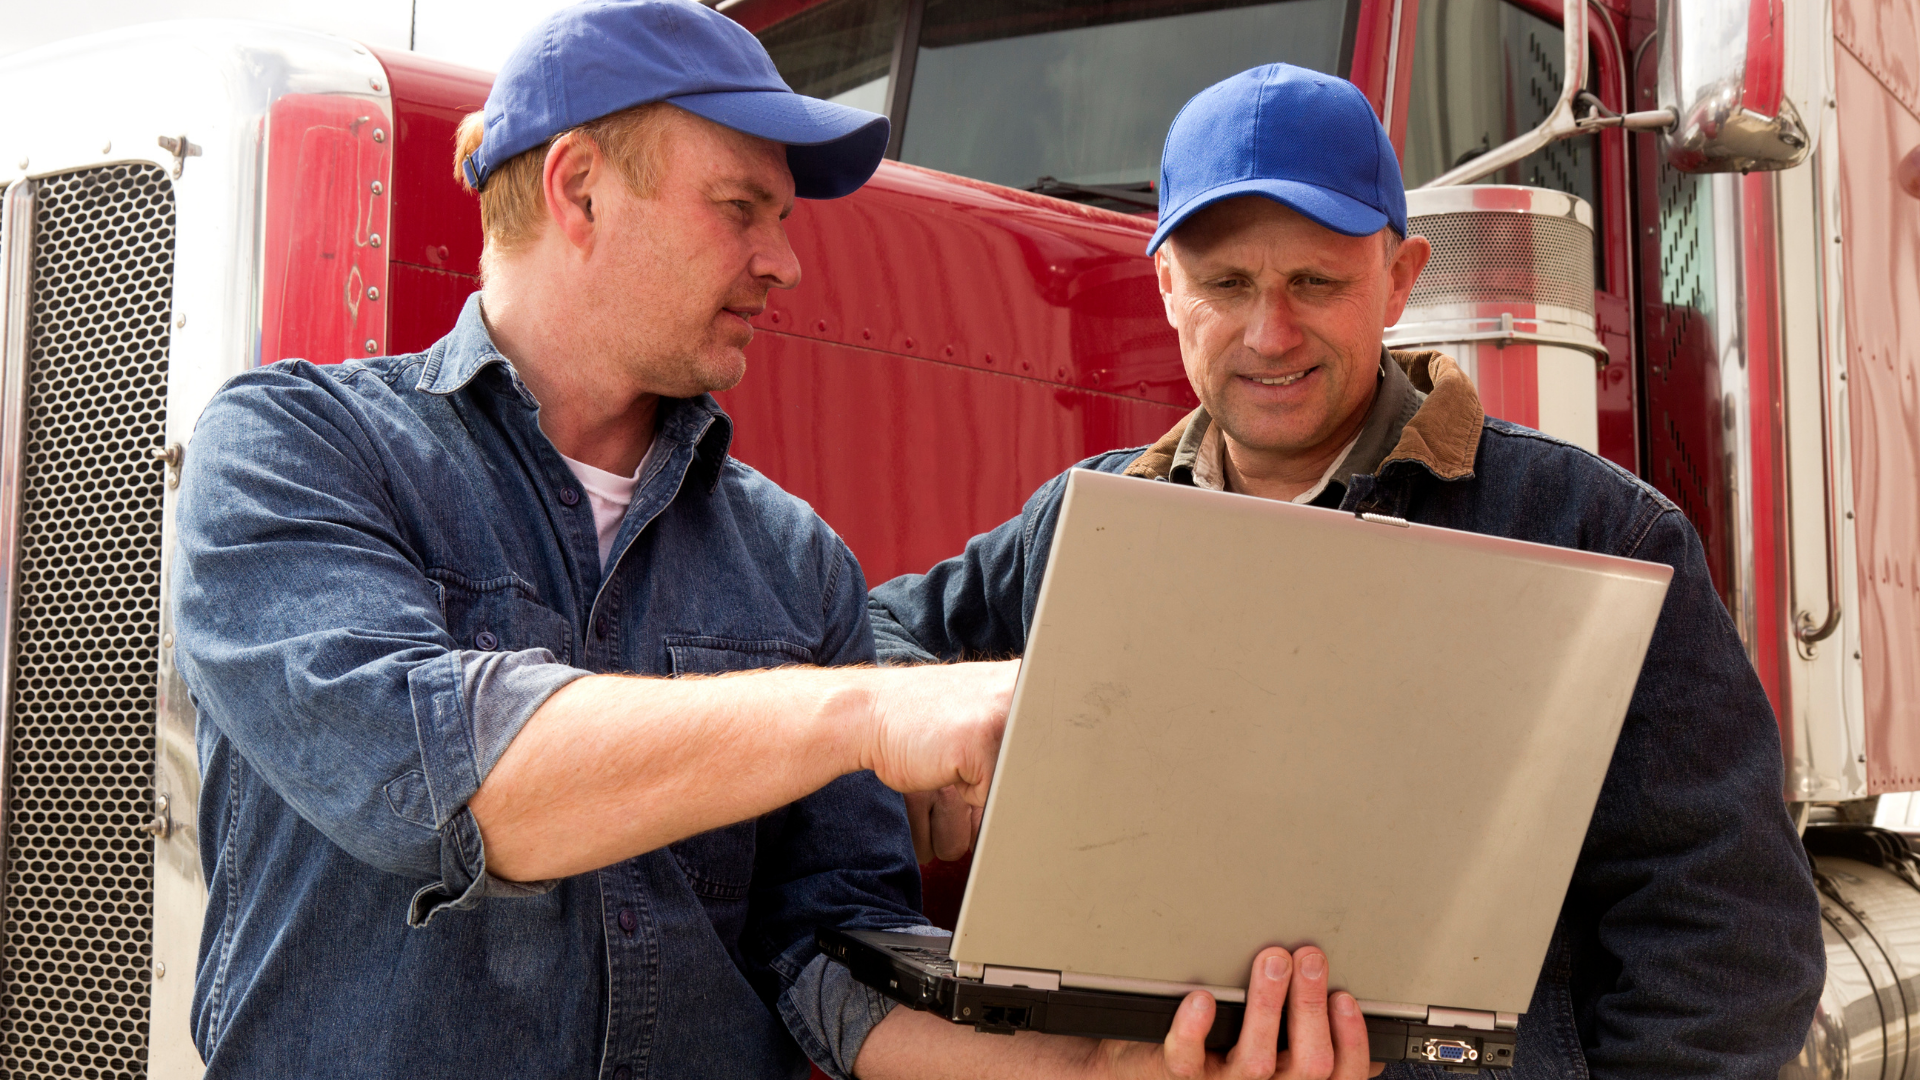 The Best Load Boards to Find Work as a Trucker in 2022